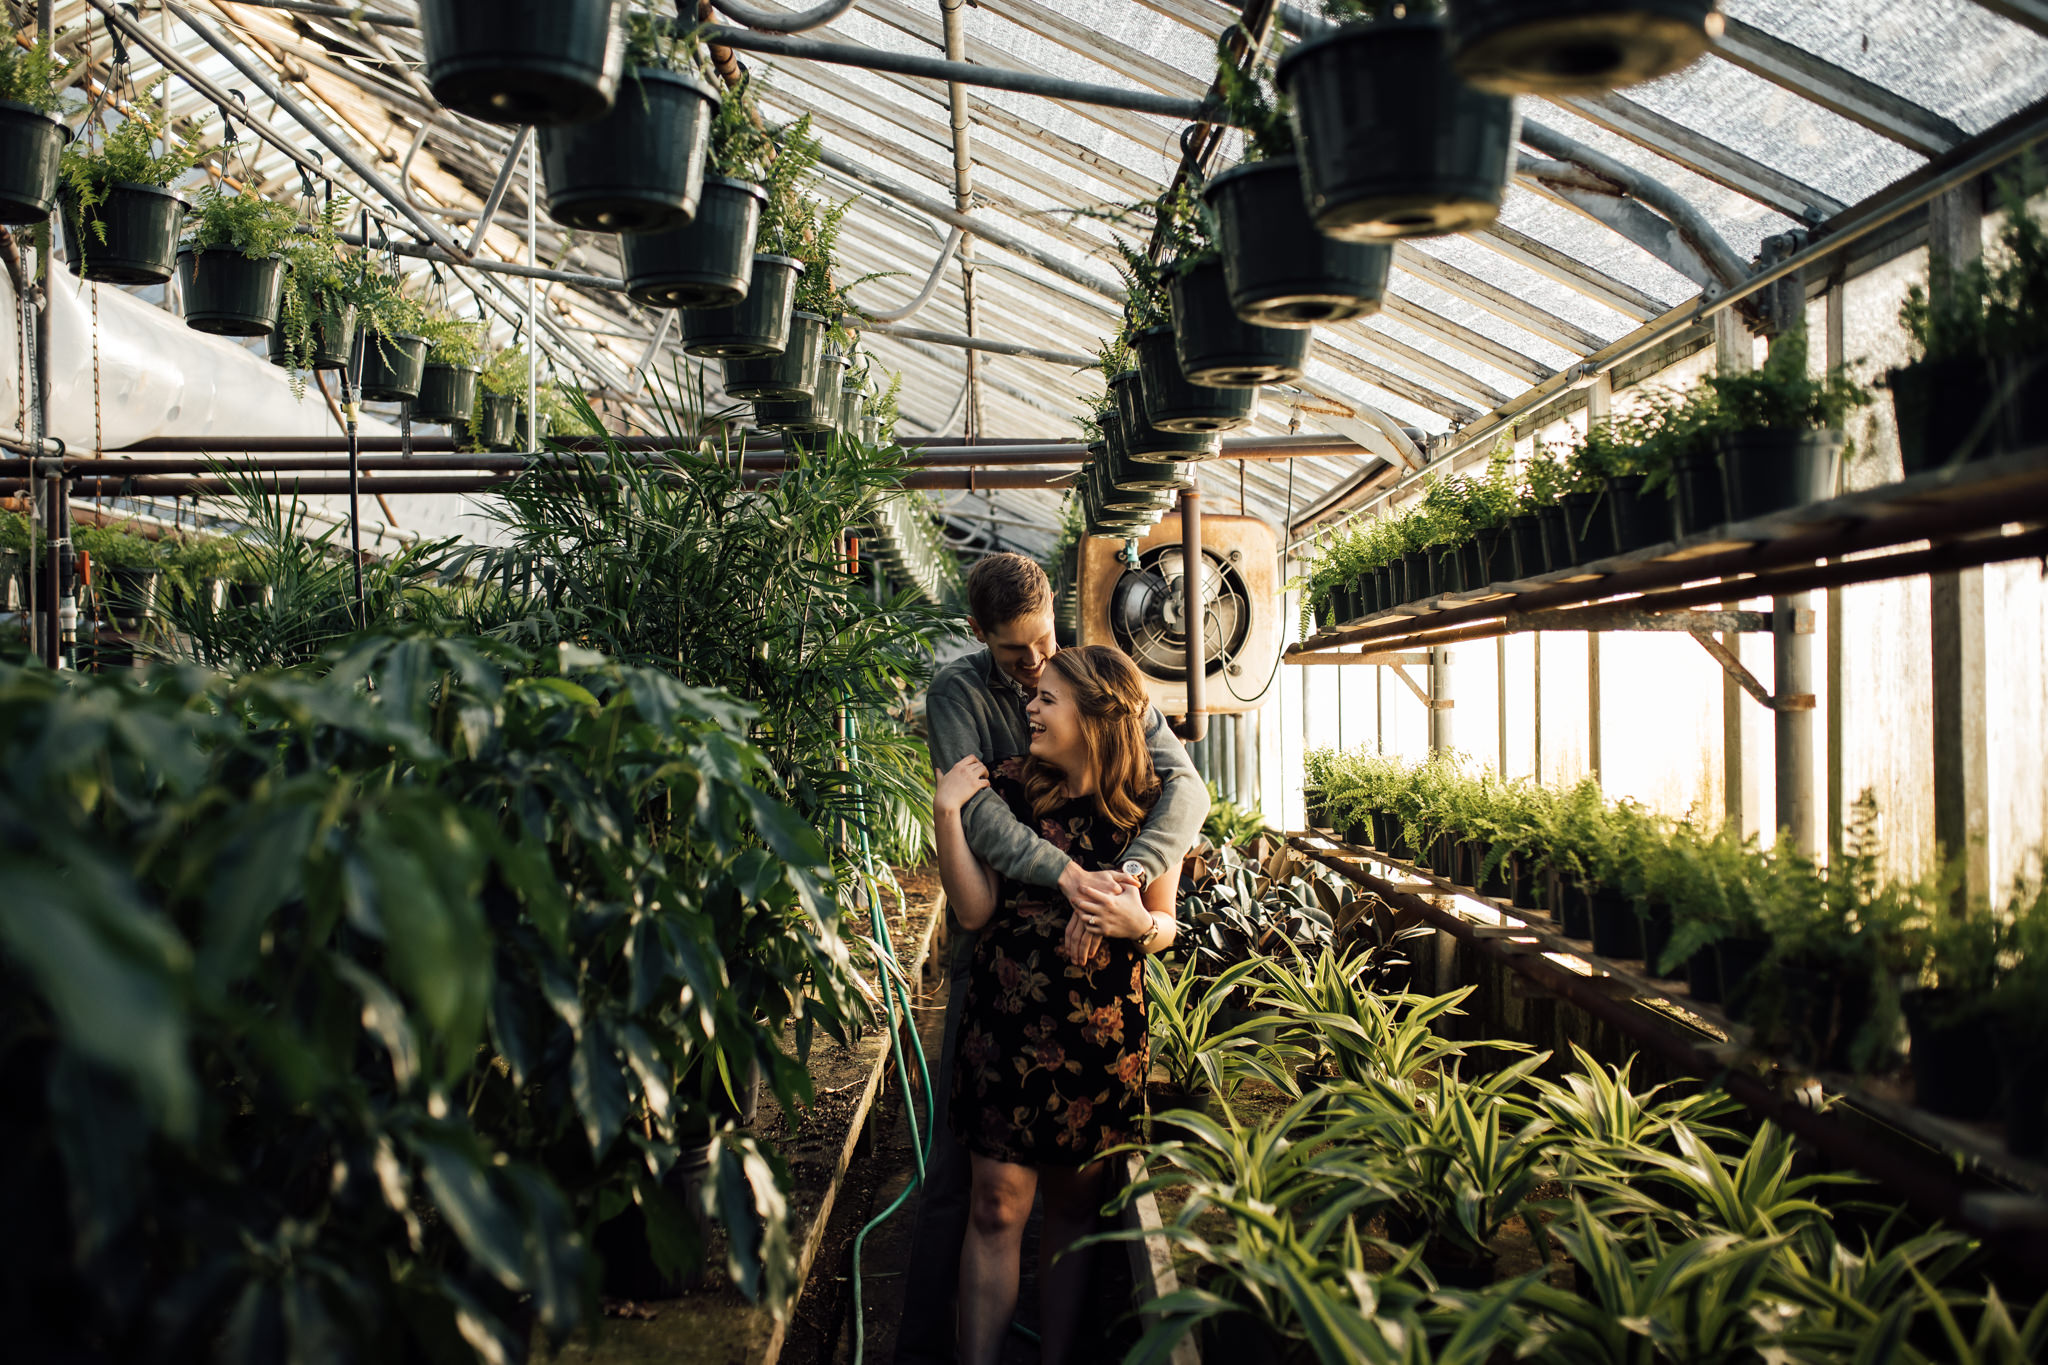 memphis-wedding-photographer-greenhouse-engagement-pictures-cassie-cook-photography-21.jpg